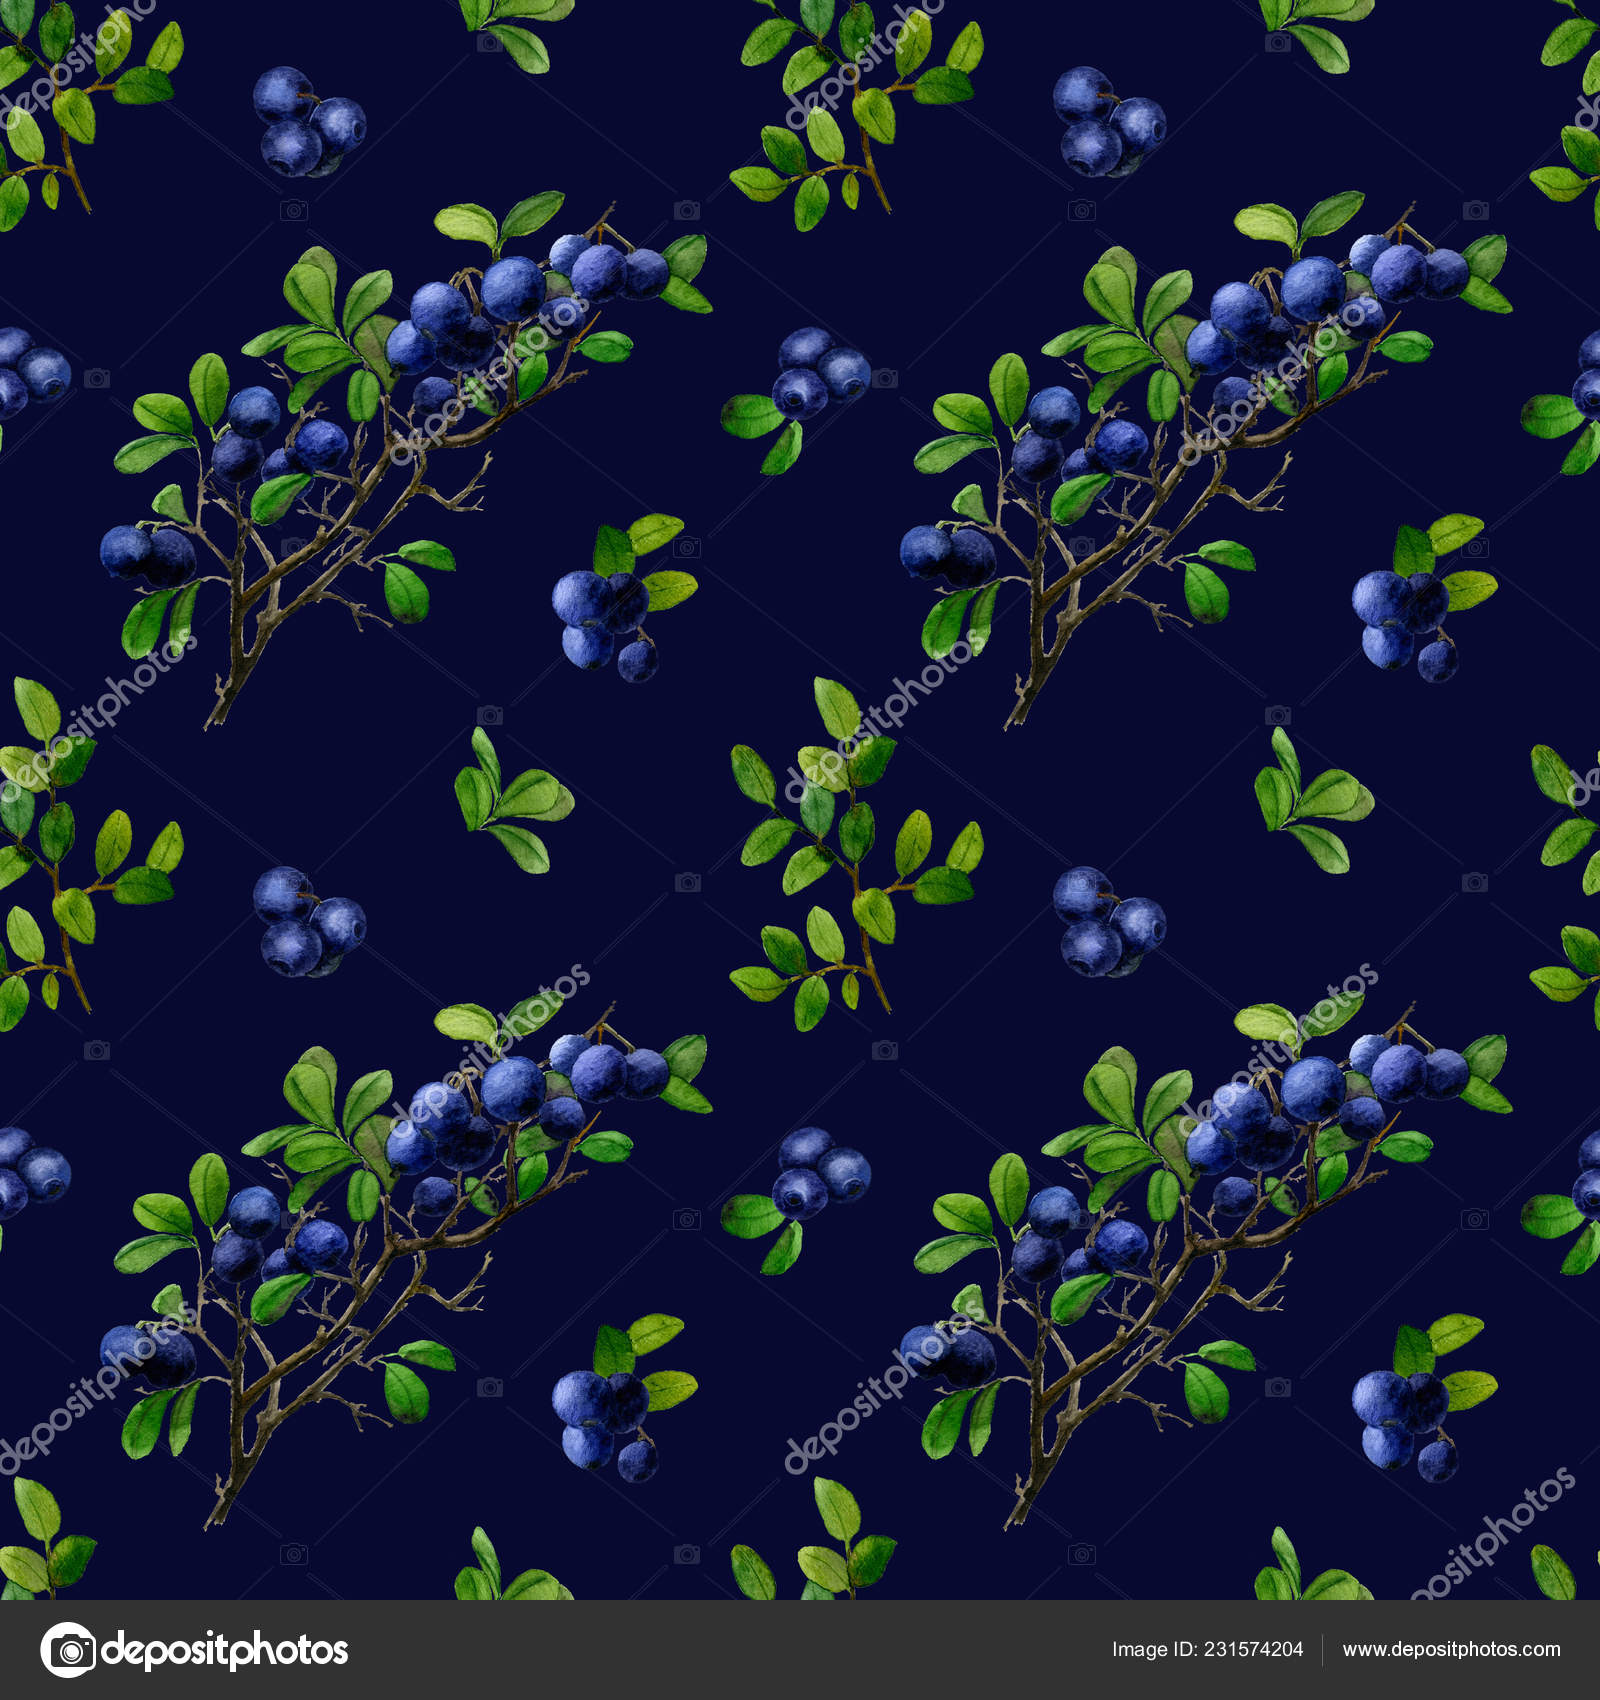 Seamless watercolor pattern with blueberry branchlets, blueberry and leaves isolated on a dark blue background